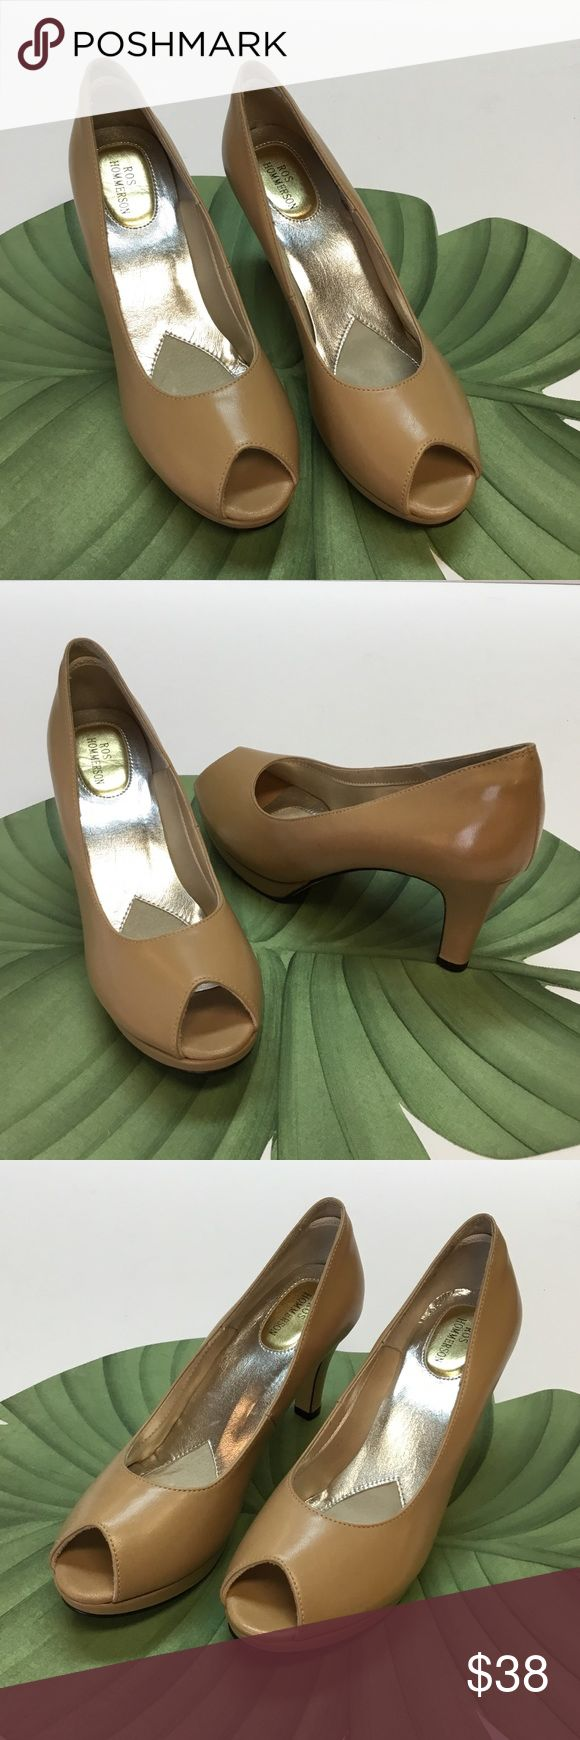 New Neutral Pumps.  Ros Hommerson I usually ship in 24 to 48 hours.  Great NEW Natural color, Leather Pumps that will accessorize all of your clothes.  Size 8.50 Slim.     Heel height is 3.00 inches.  Has nice padded footbed.  Excellent Condition. Ros Hommerson Shoes Heels